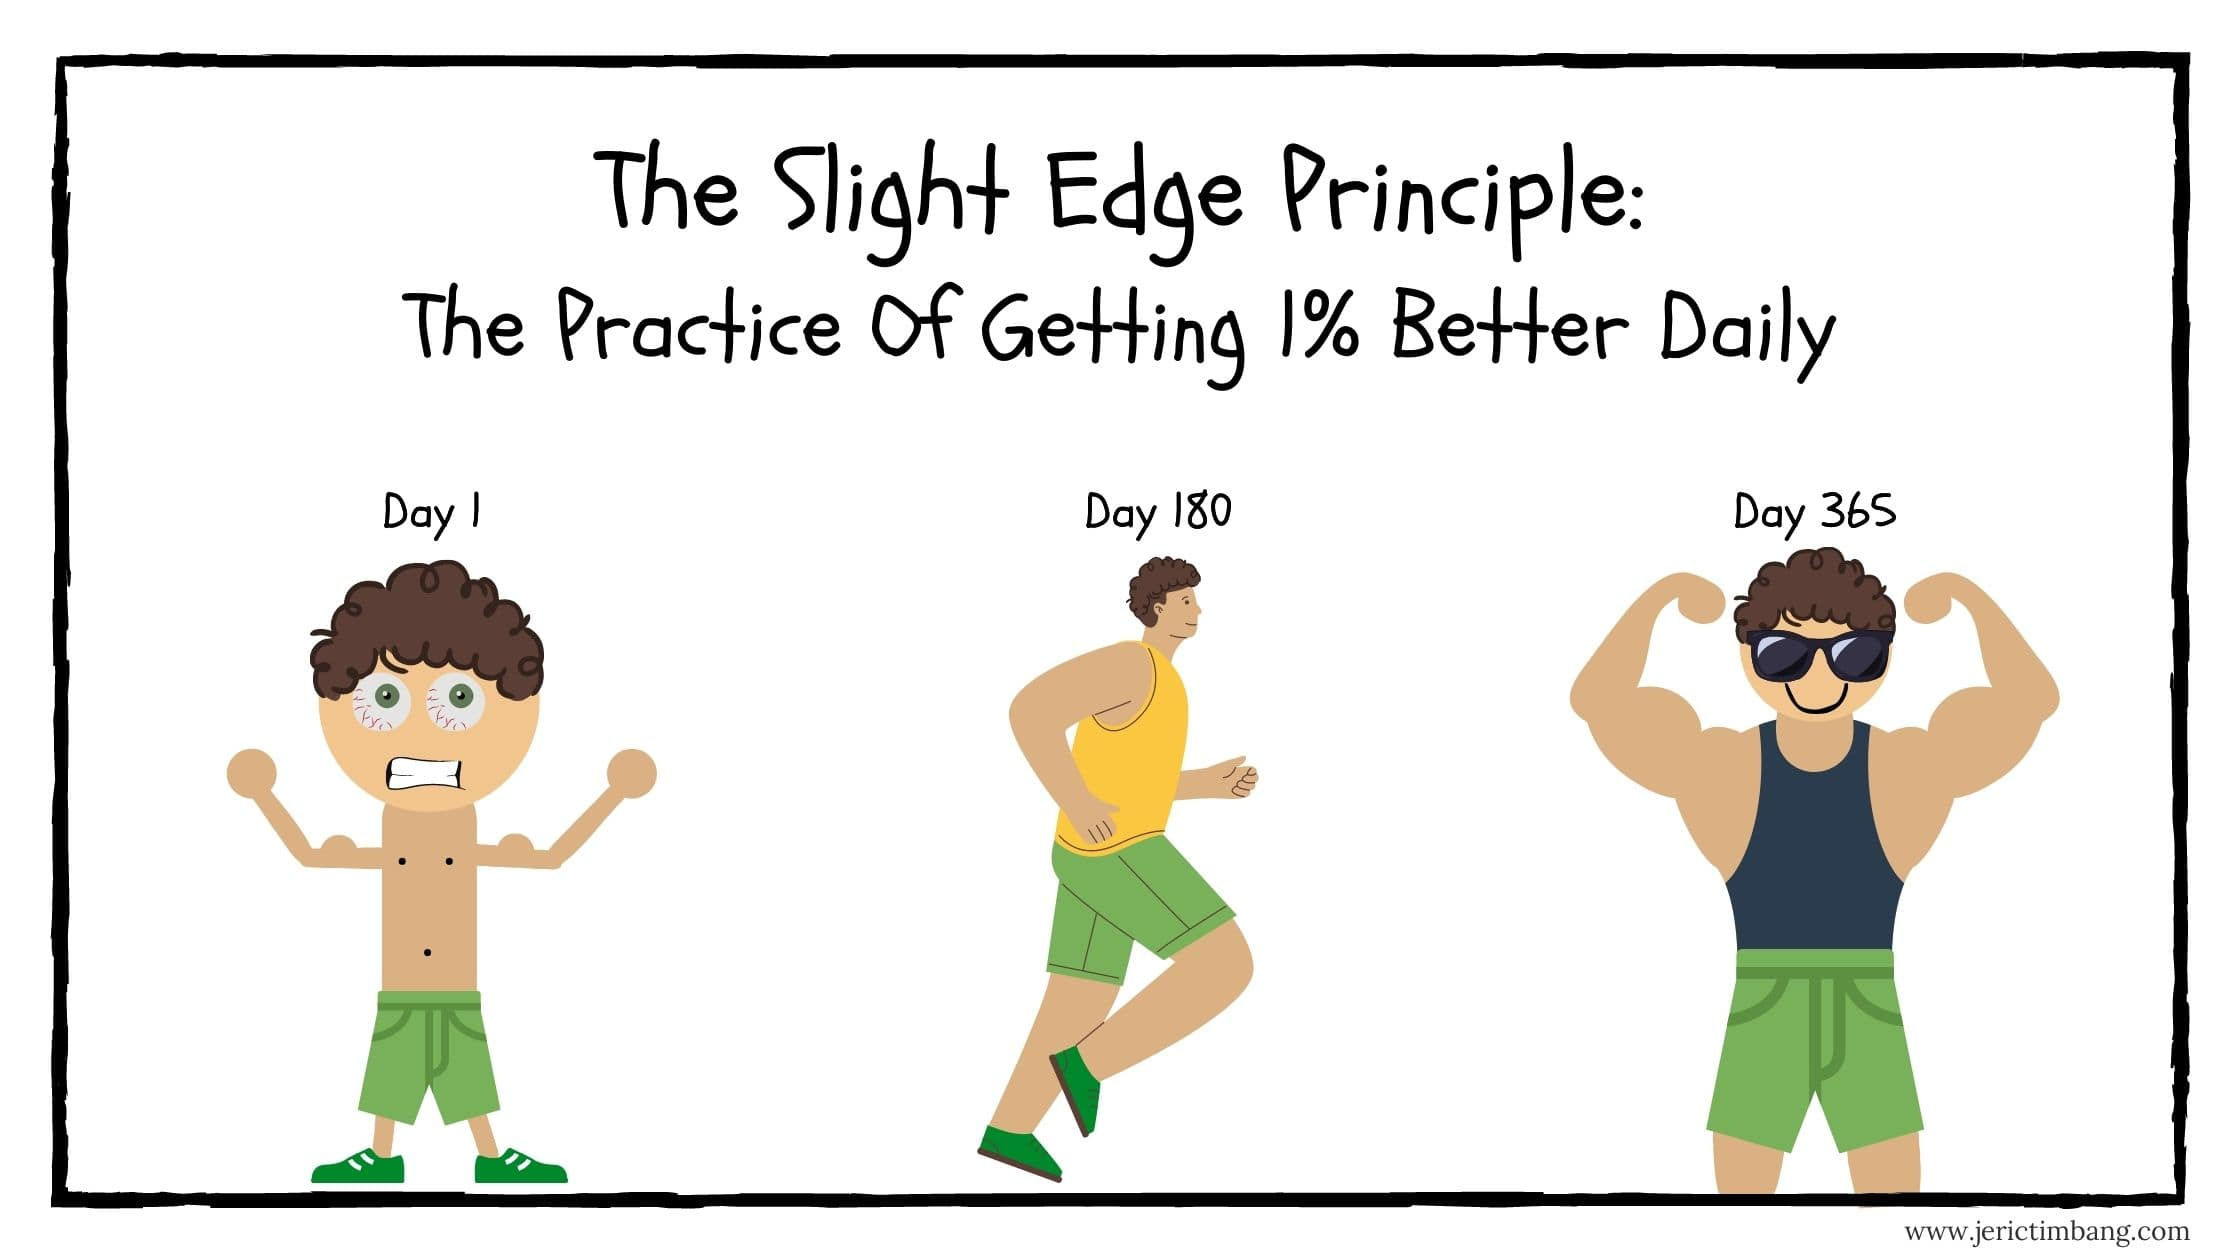 The Slight Edge Principle: The Practice Of Getting 1% Better Daily (2021)